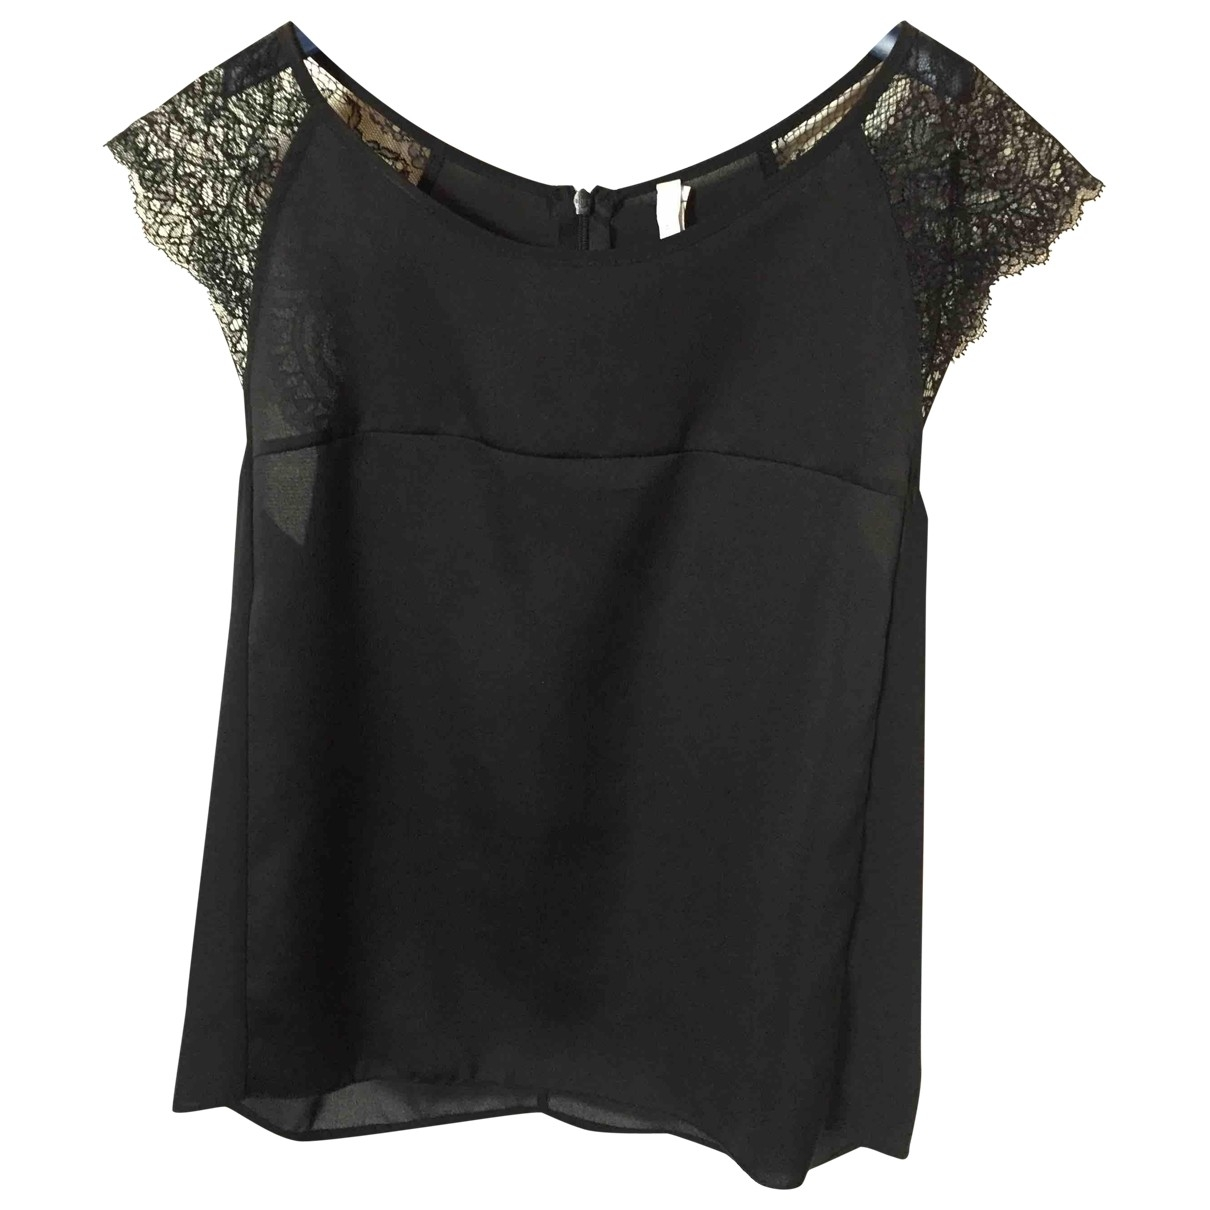 Impérial \N Black  top for Women S International